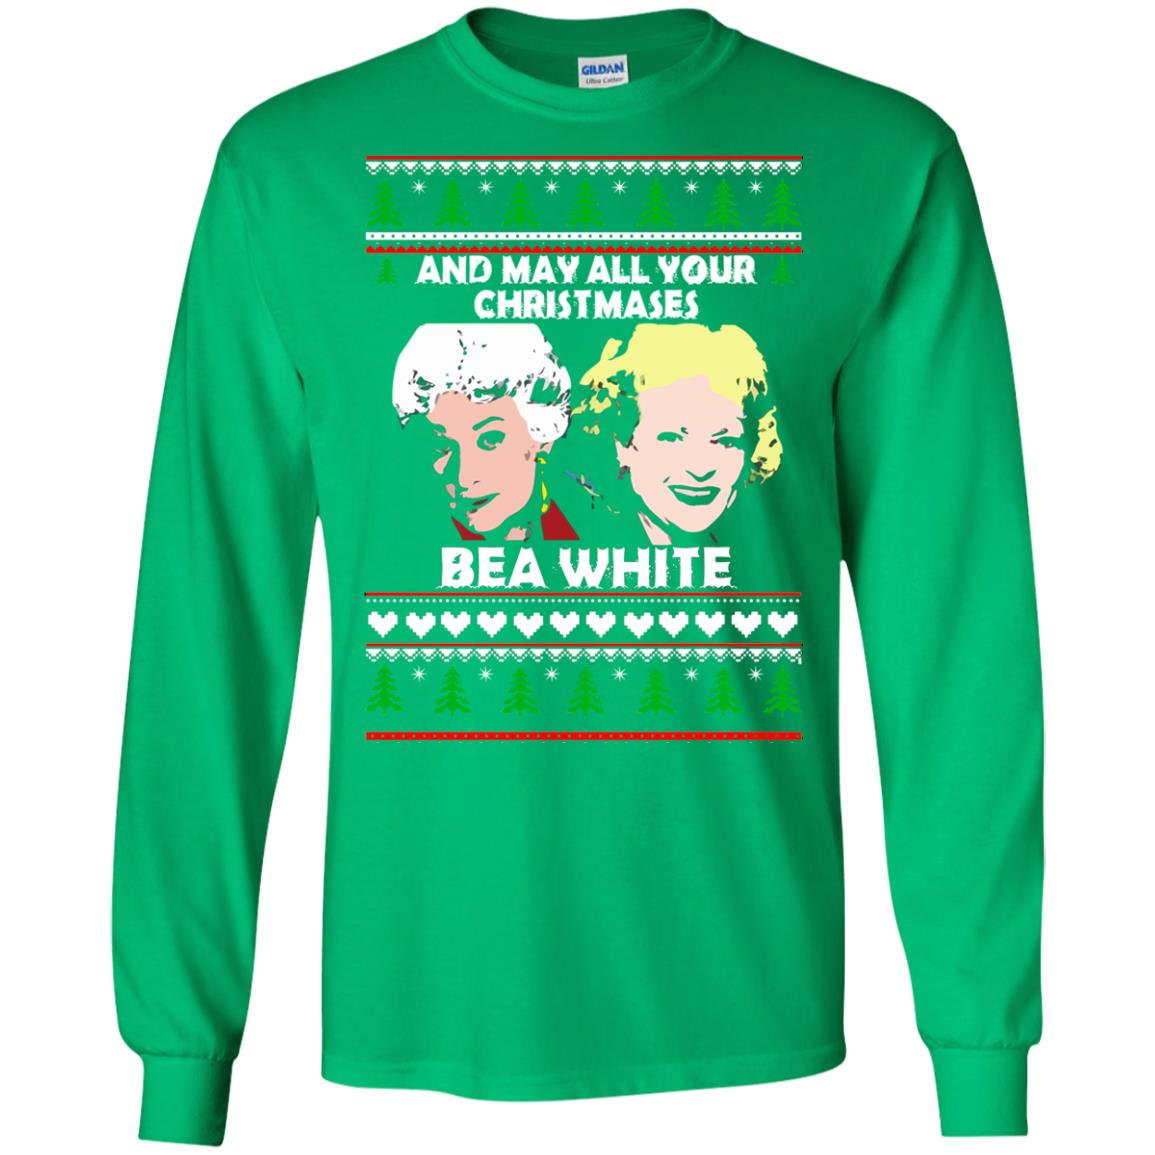 image 2940 - Golden Girls: May all your Christmases Bea White Ugly Sweater, Shirt